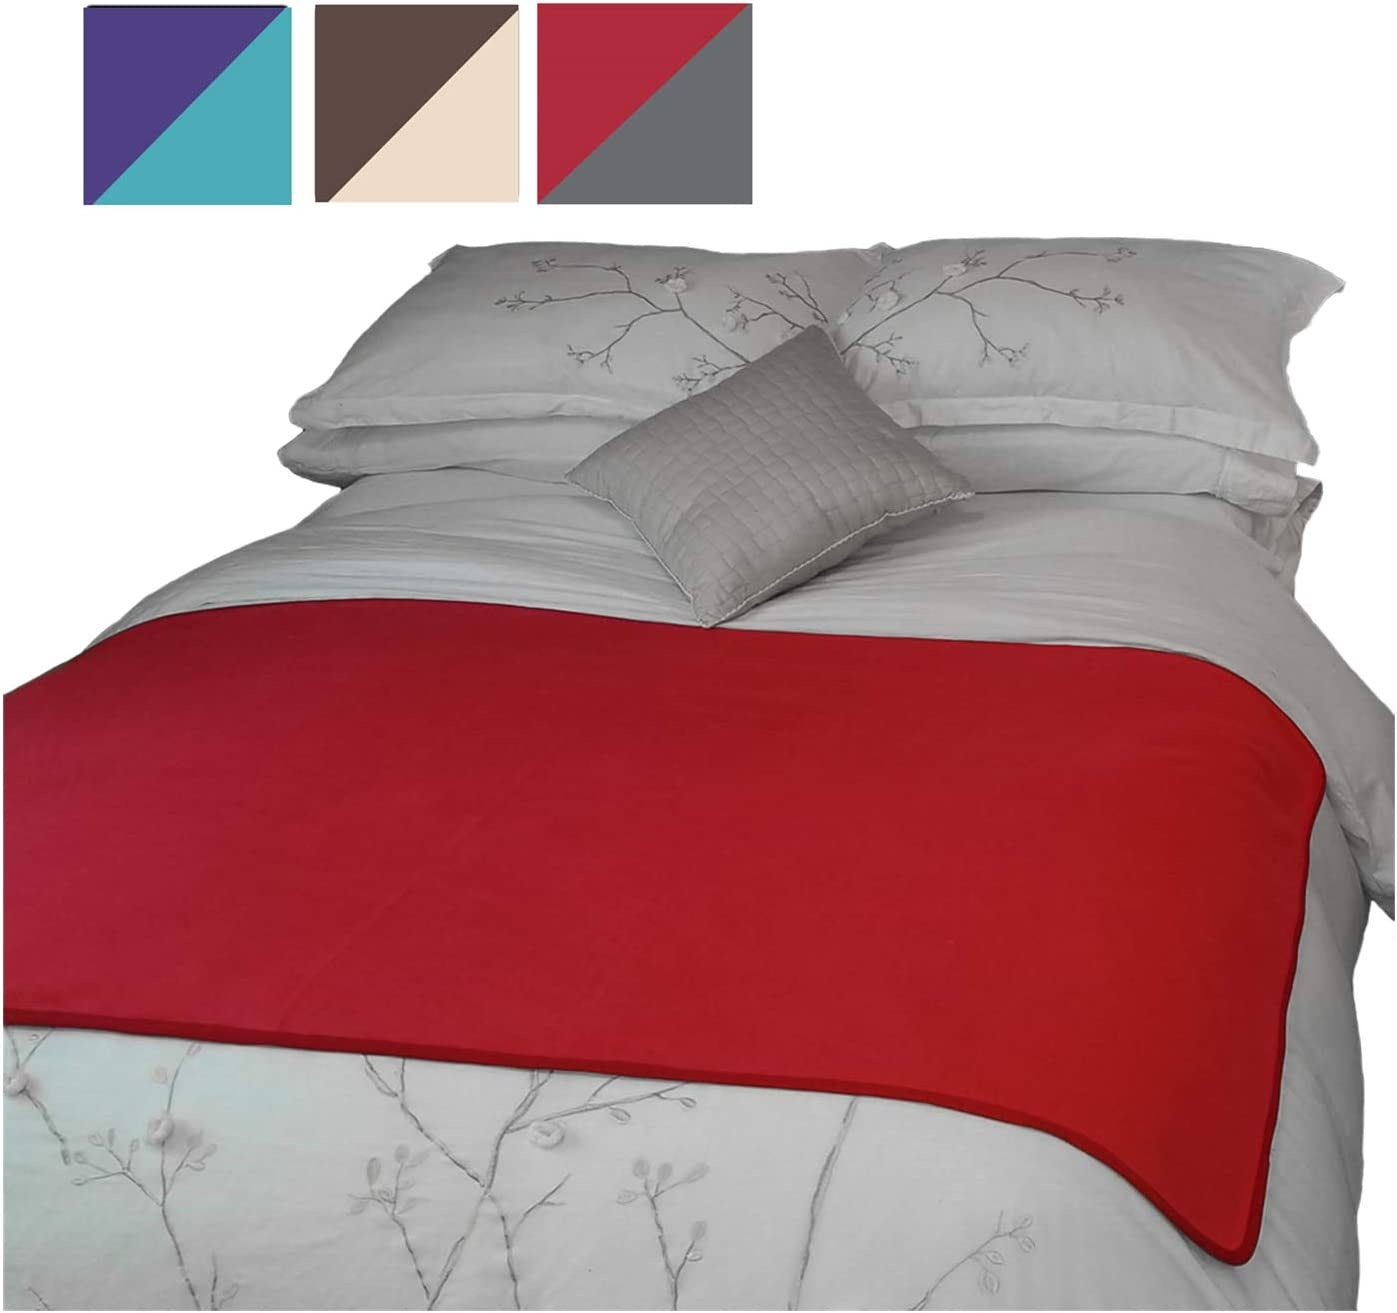 TOP Waterproof Blanket - Keeps Everything 100% Dry - No Matter How Wet It Gets! Deluxe Bed Mattress and Furniture Protector for People and Pets, Soft Fleece (Red Gray Reversible, Jumbo 80x60): Home & Kitchen